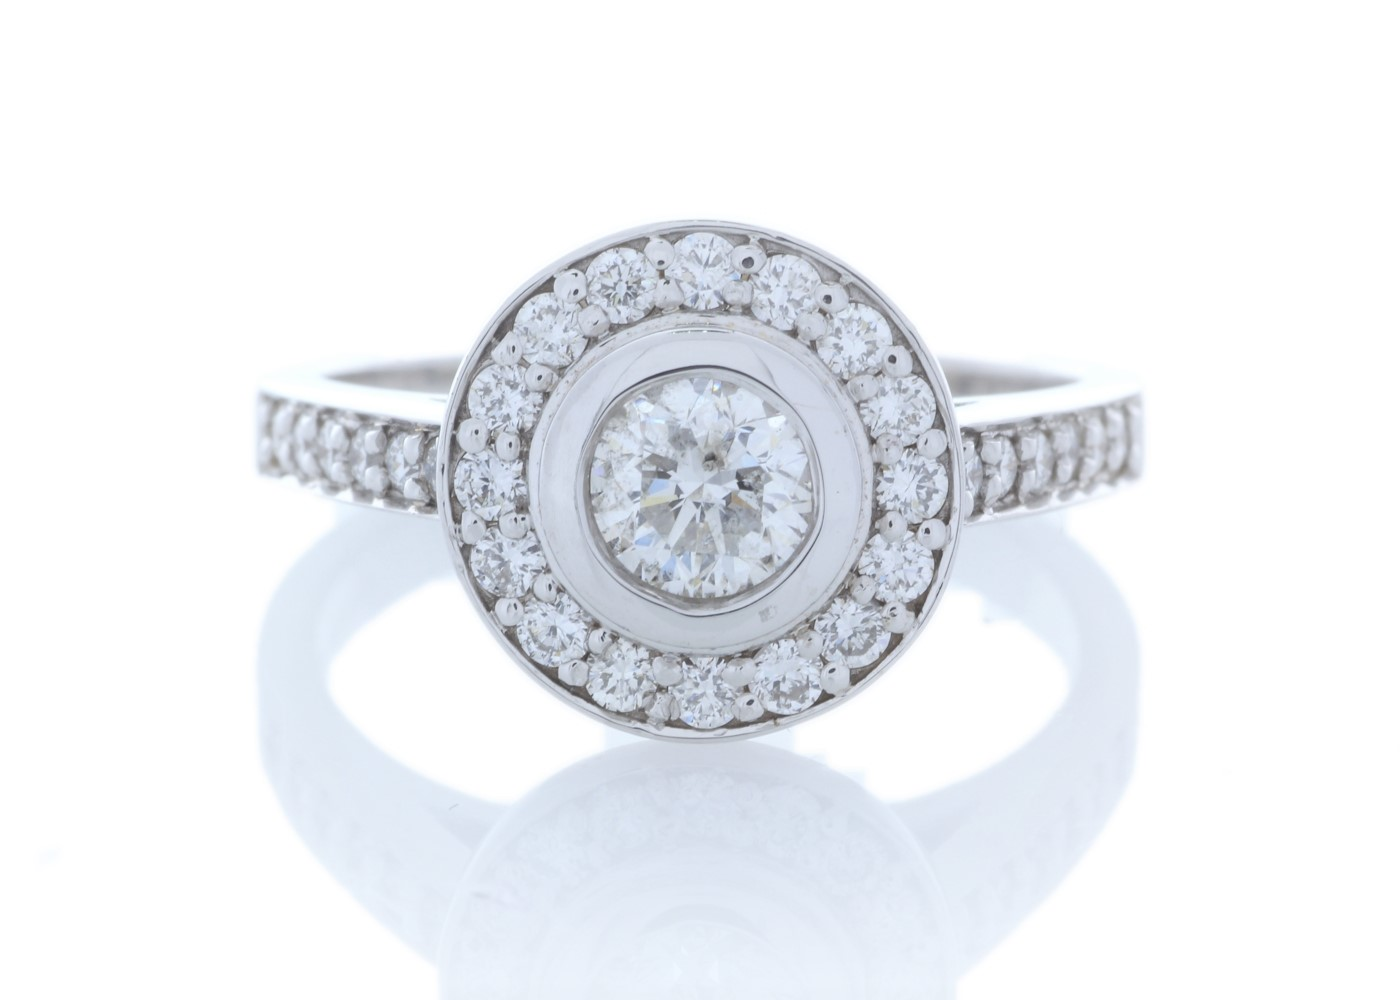 Lot 27 - 18ct White Gold Single Stone With Halo Setting Ring (0.50) 1.00 Carats